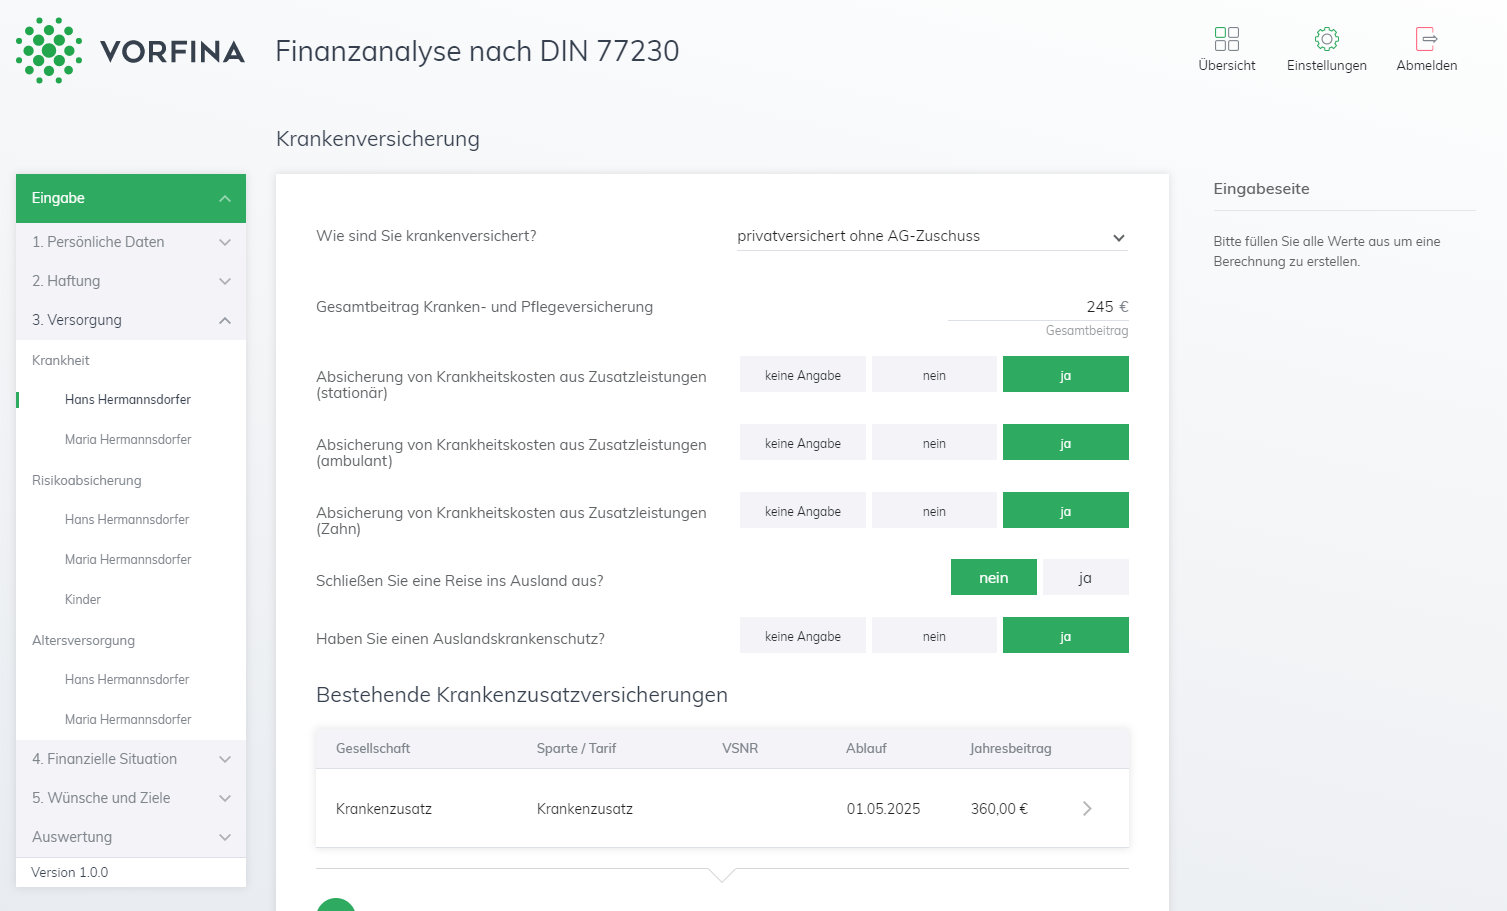 https://www.dinanalyse.de/wp-content/uploads/sites/3/2019/06/Versorgung@2x.jpg